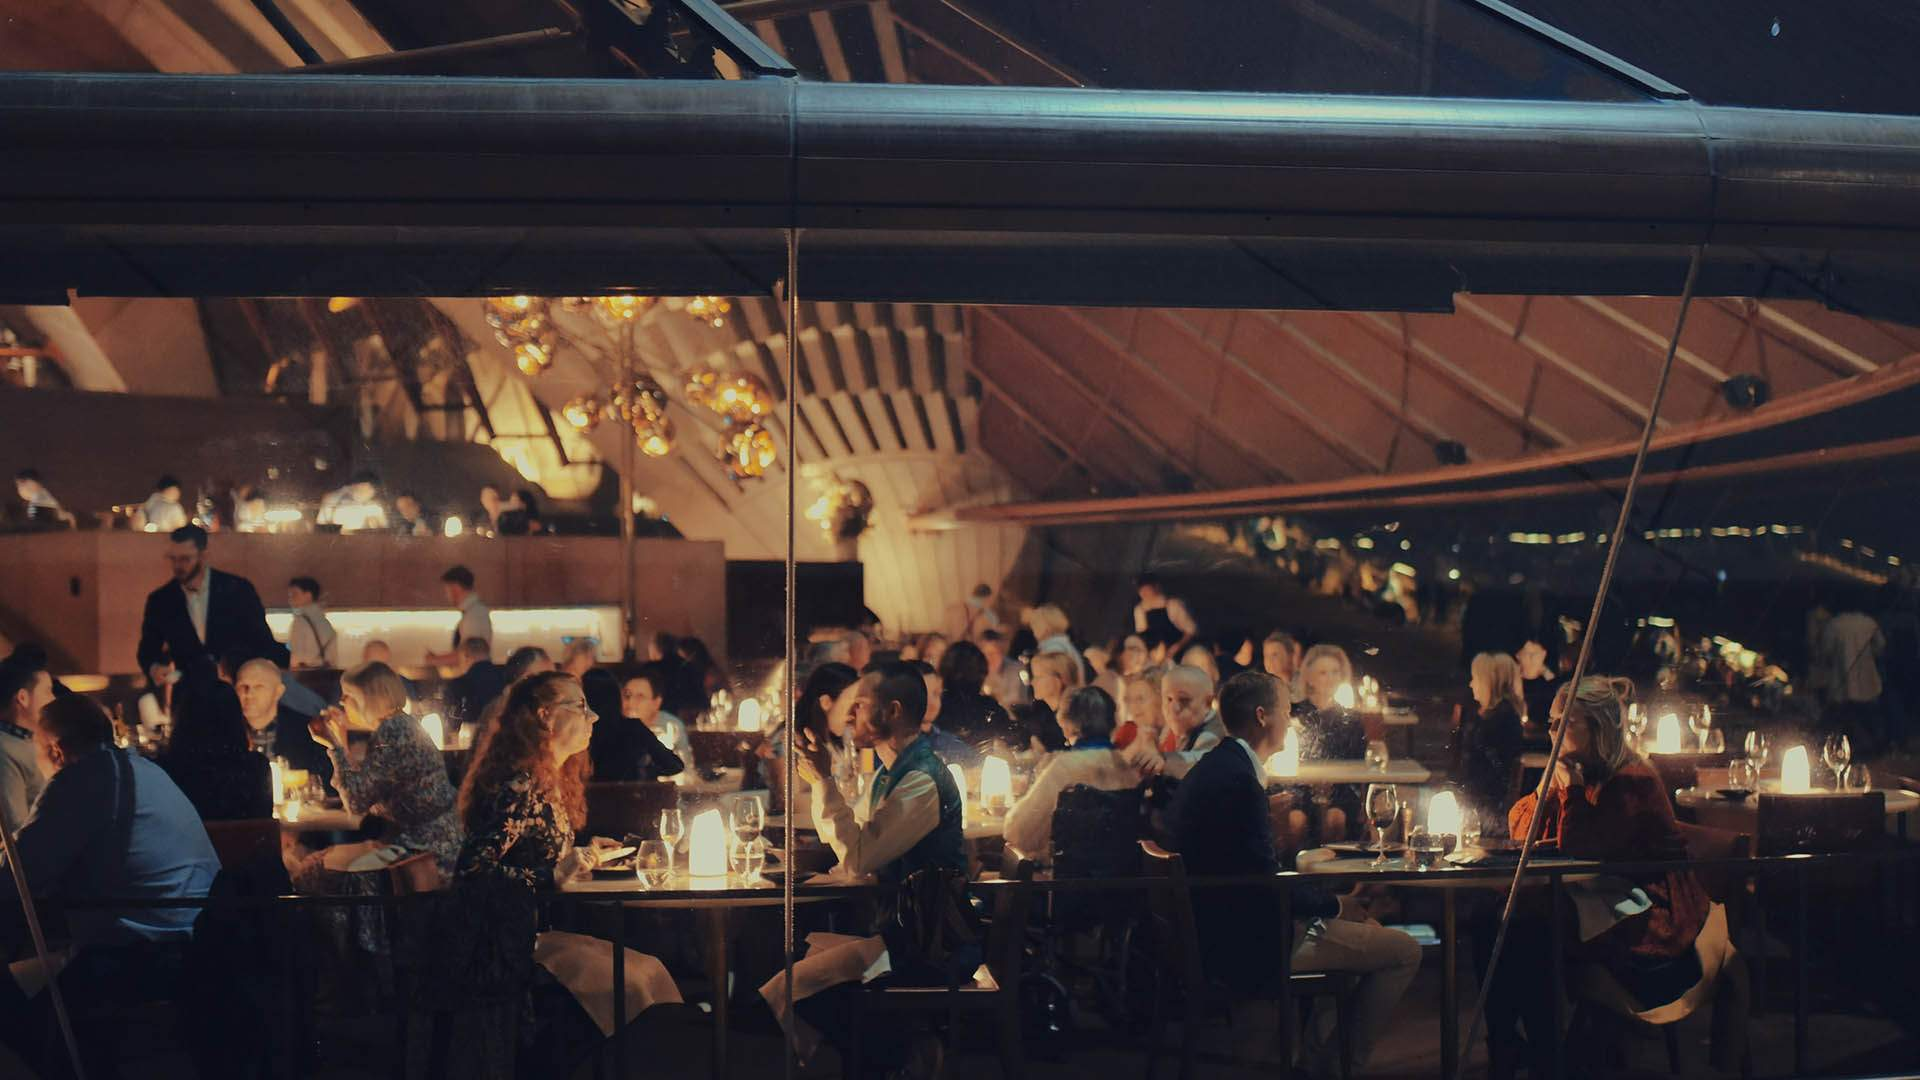 Restaurants and Bars to Reopen to Fully Vaccinated Patrons Once 70 Percent of NSW Is Jabbed